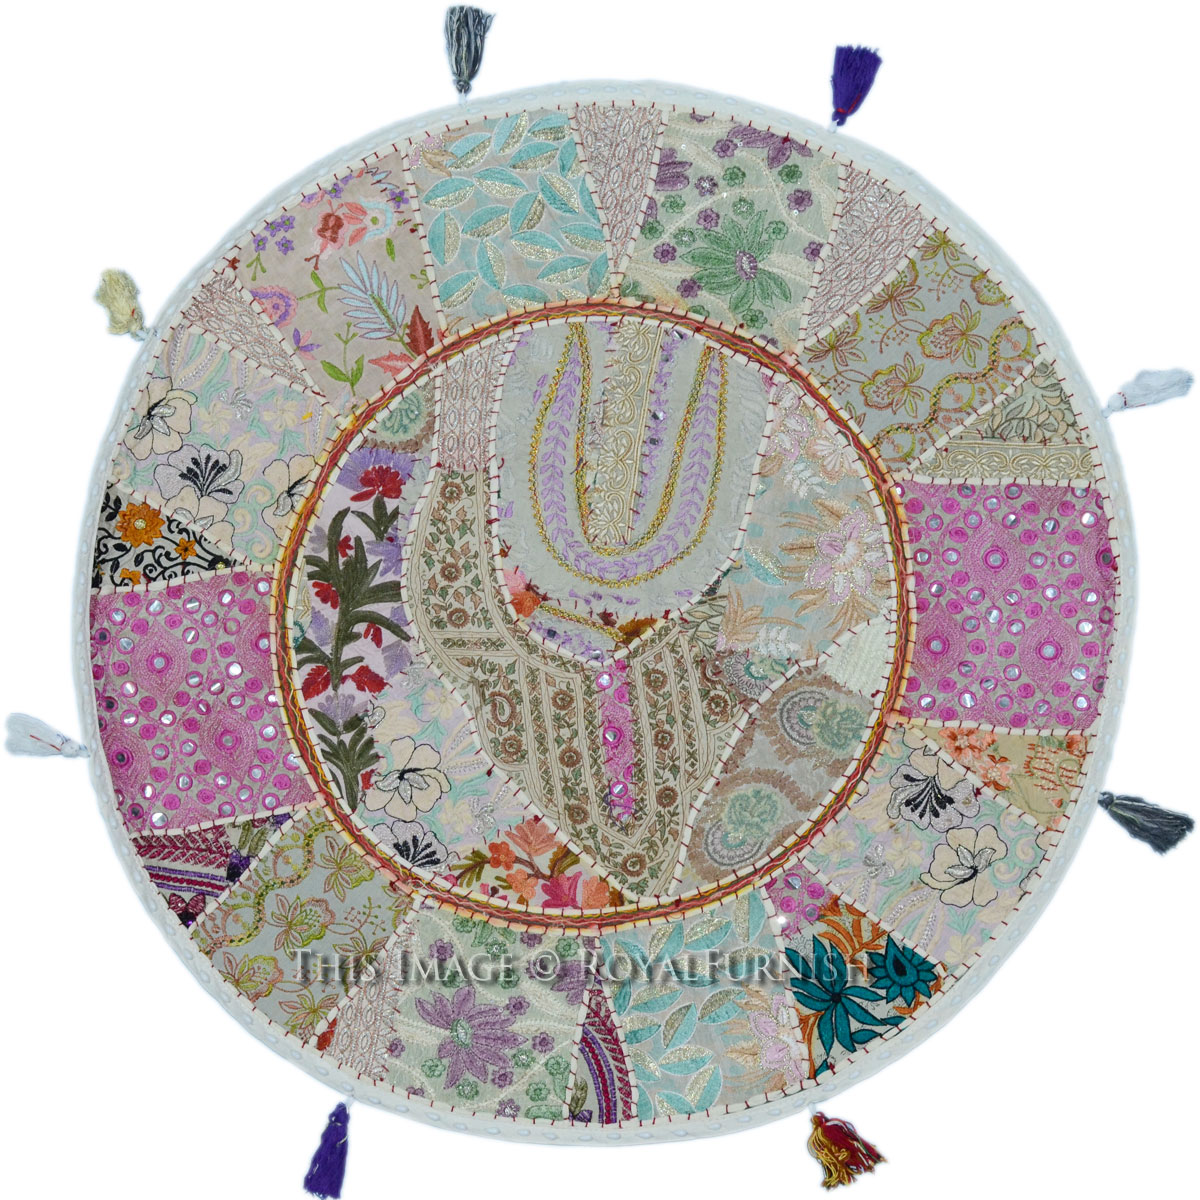 Giant Round Floor Pillows : 28 Inch Giant White Vintage Round Patchwork Floor Cushion Cover - RoyalFurnish.com